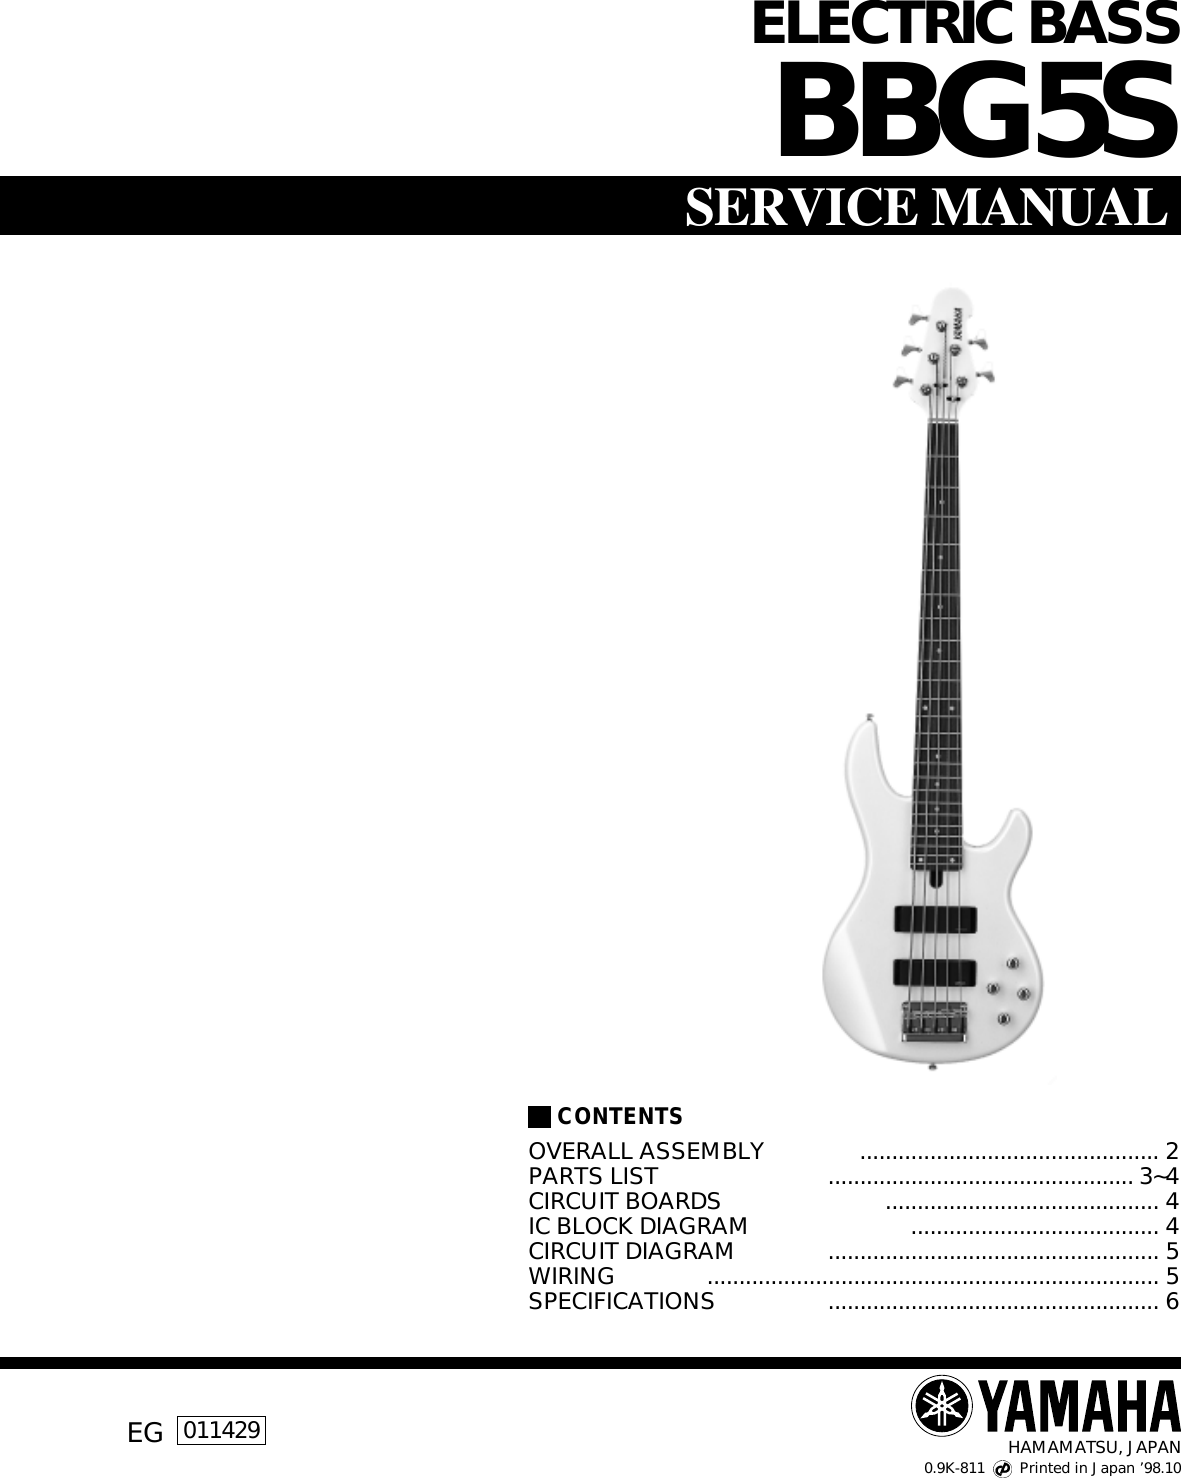 Yamaha Guitar Bbg5s Users Manual Electric Bass B Wiring Diagram